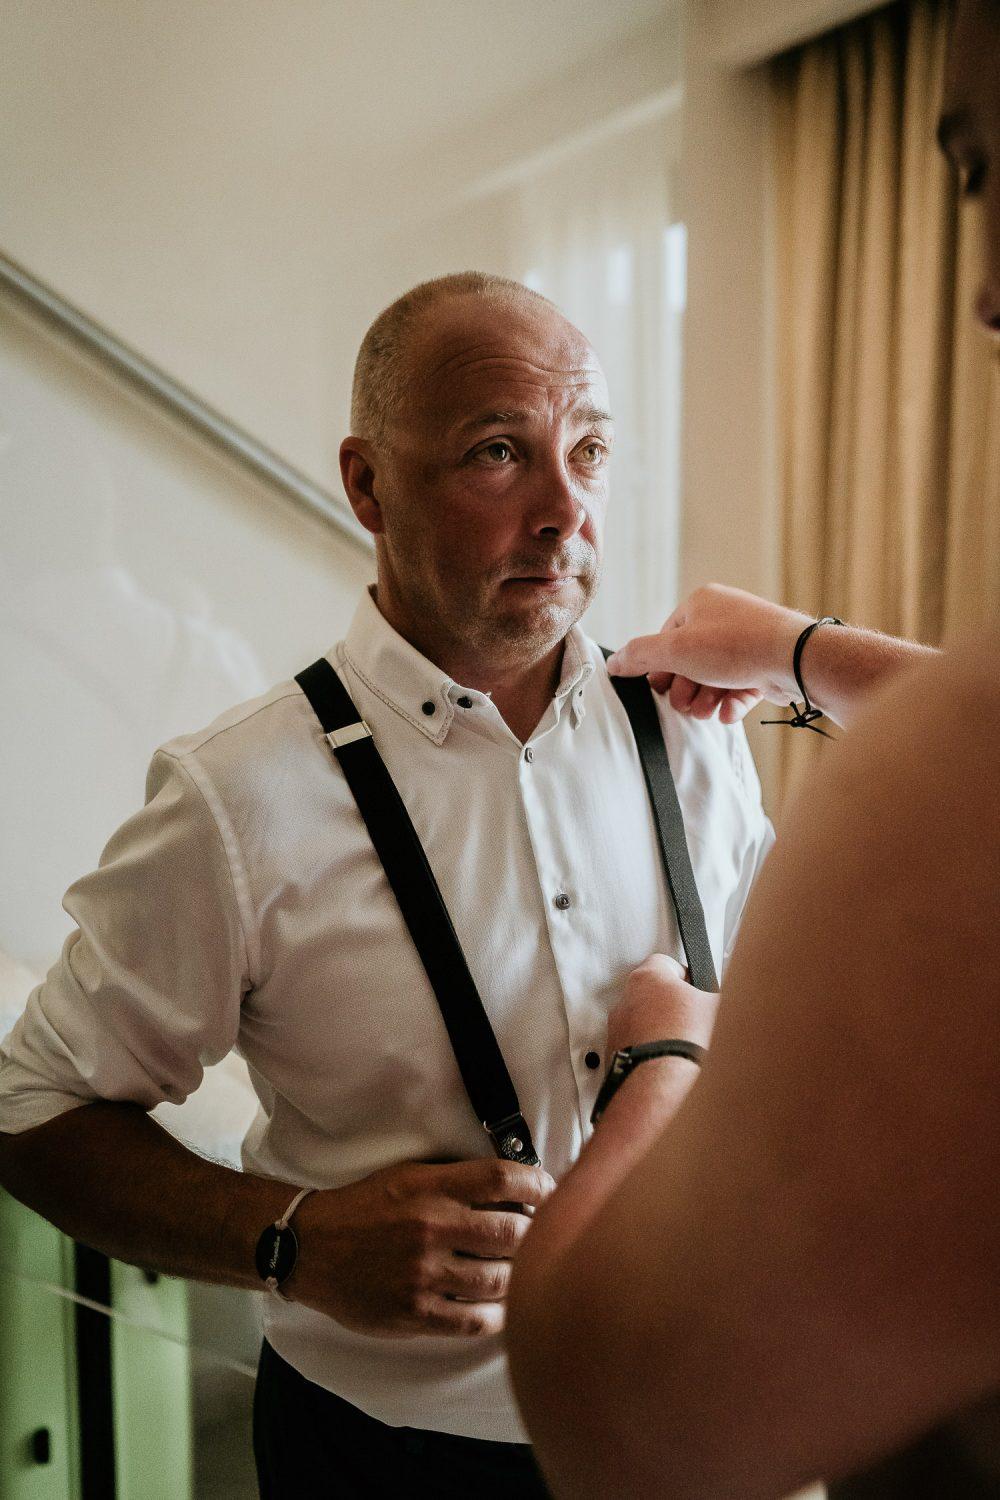 groom helping father of groom with braces for suit